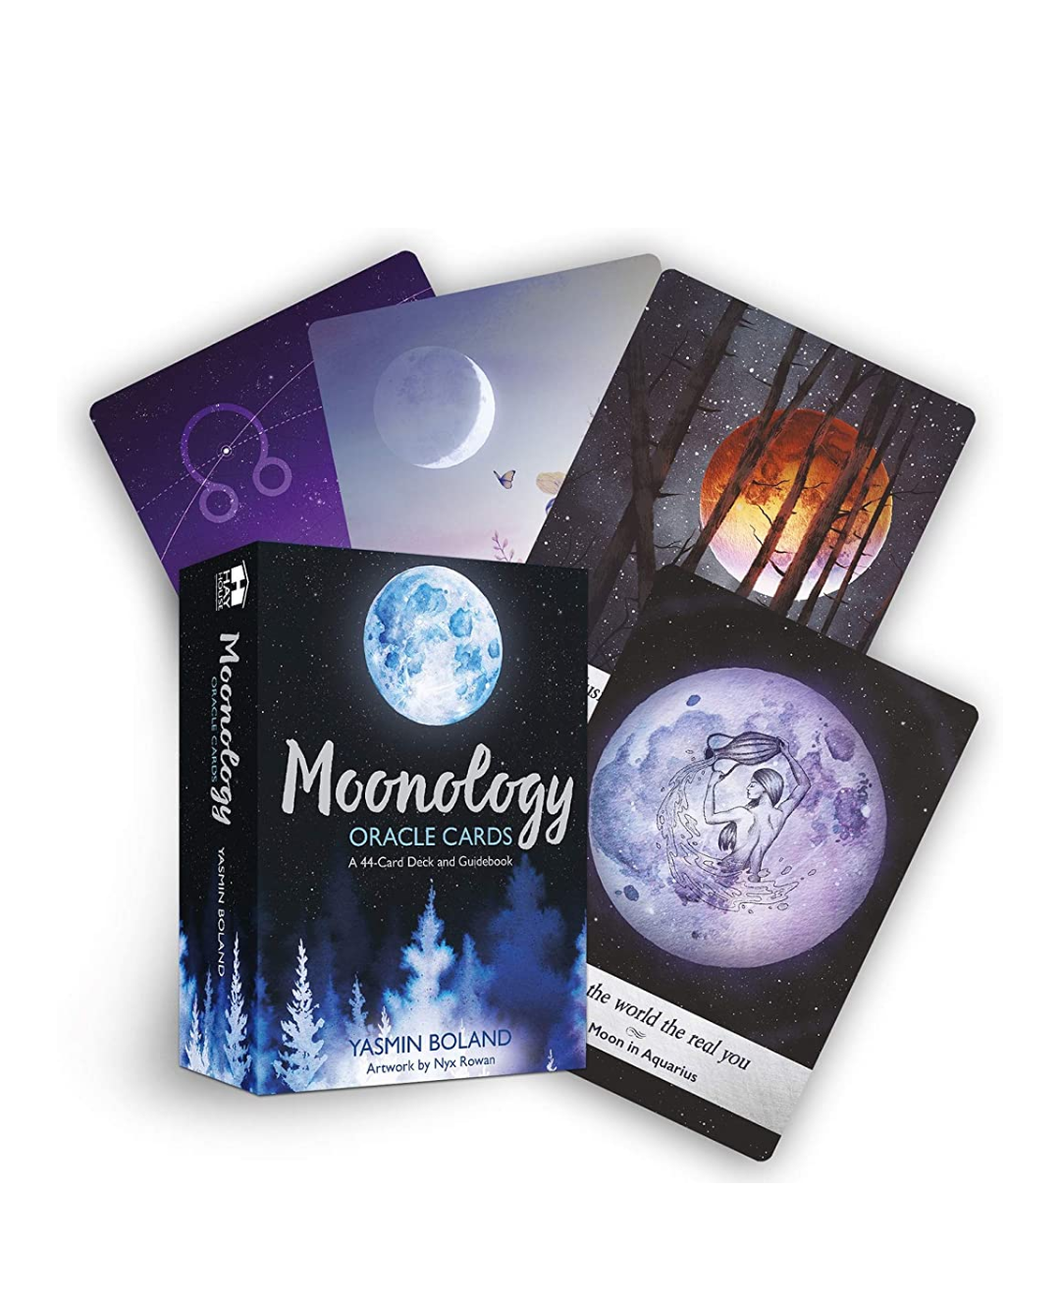 Moonology Oracle Cards (Divination, Oracle, Fortune Telling)